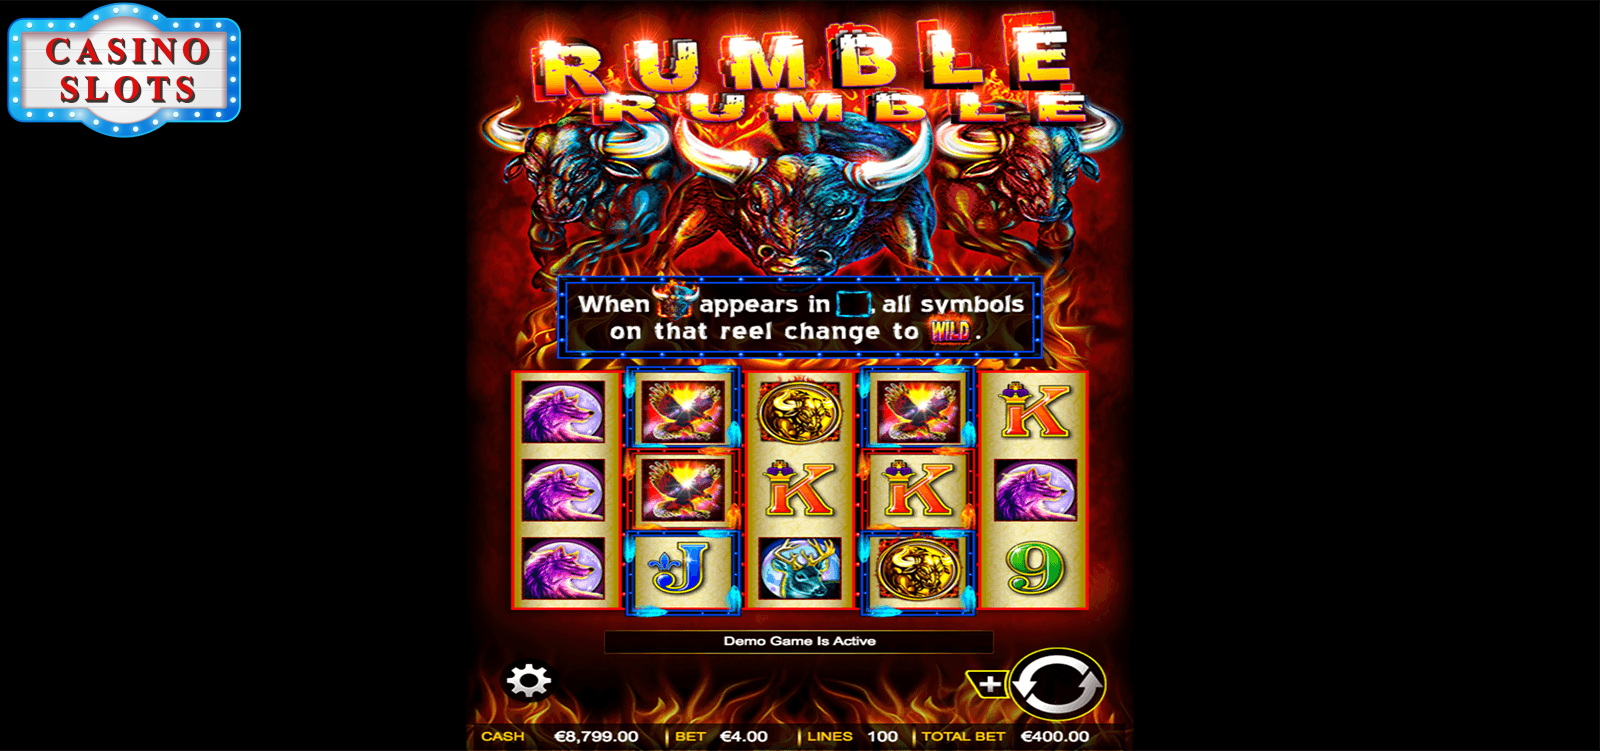 Rumble Rumble Online Slot